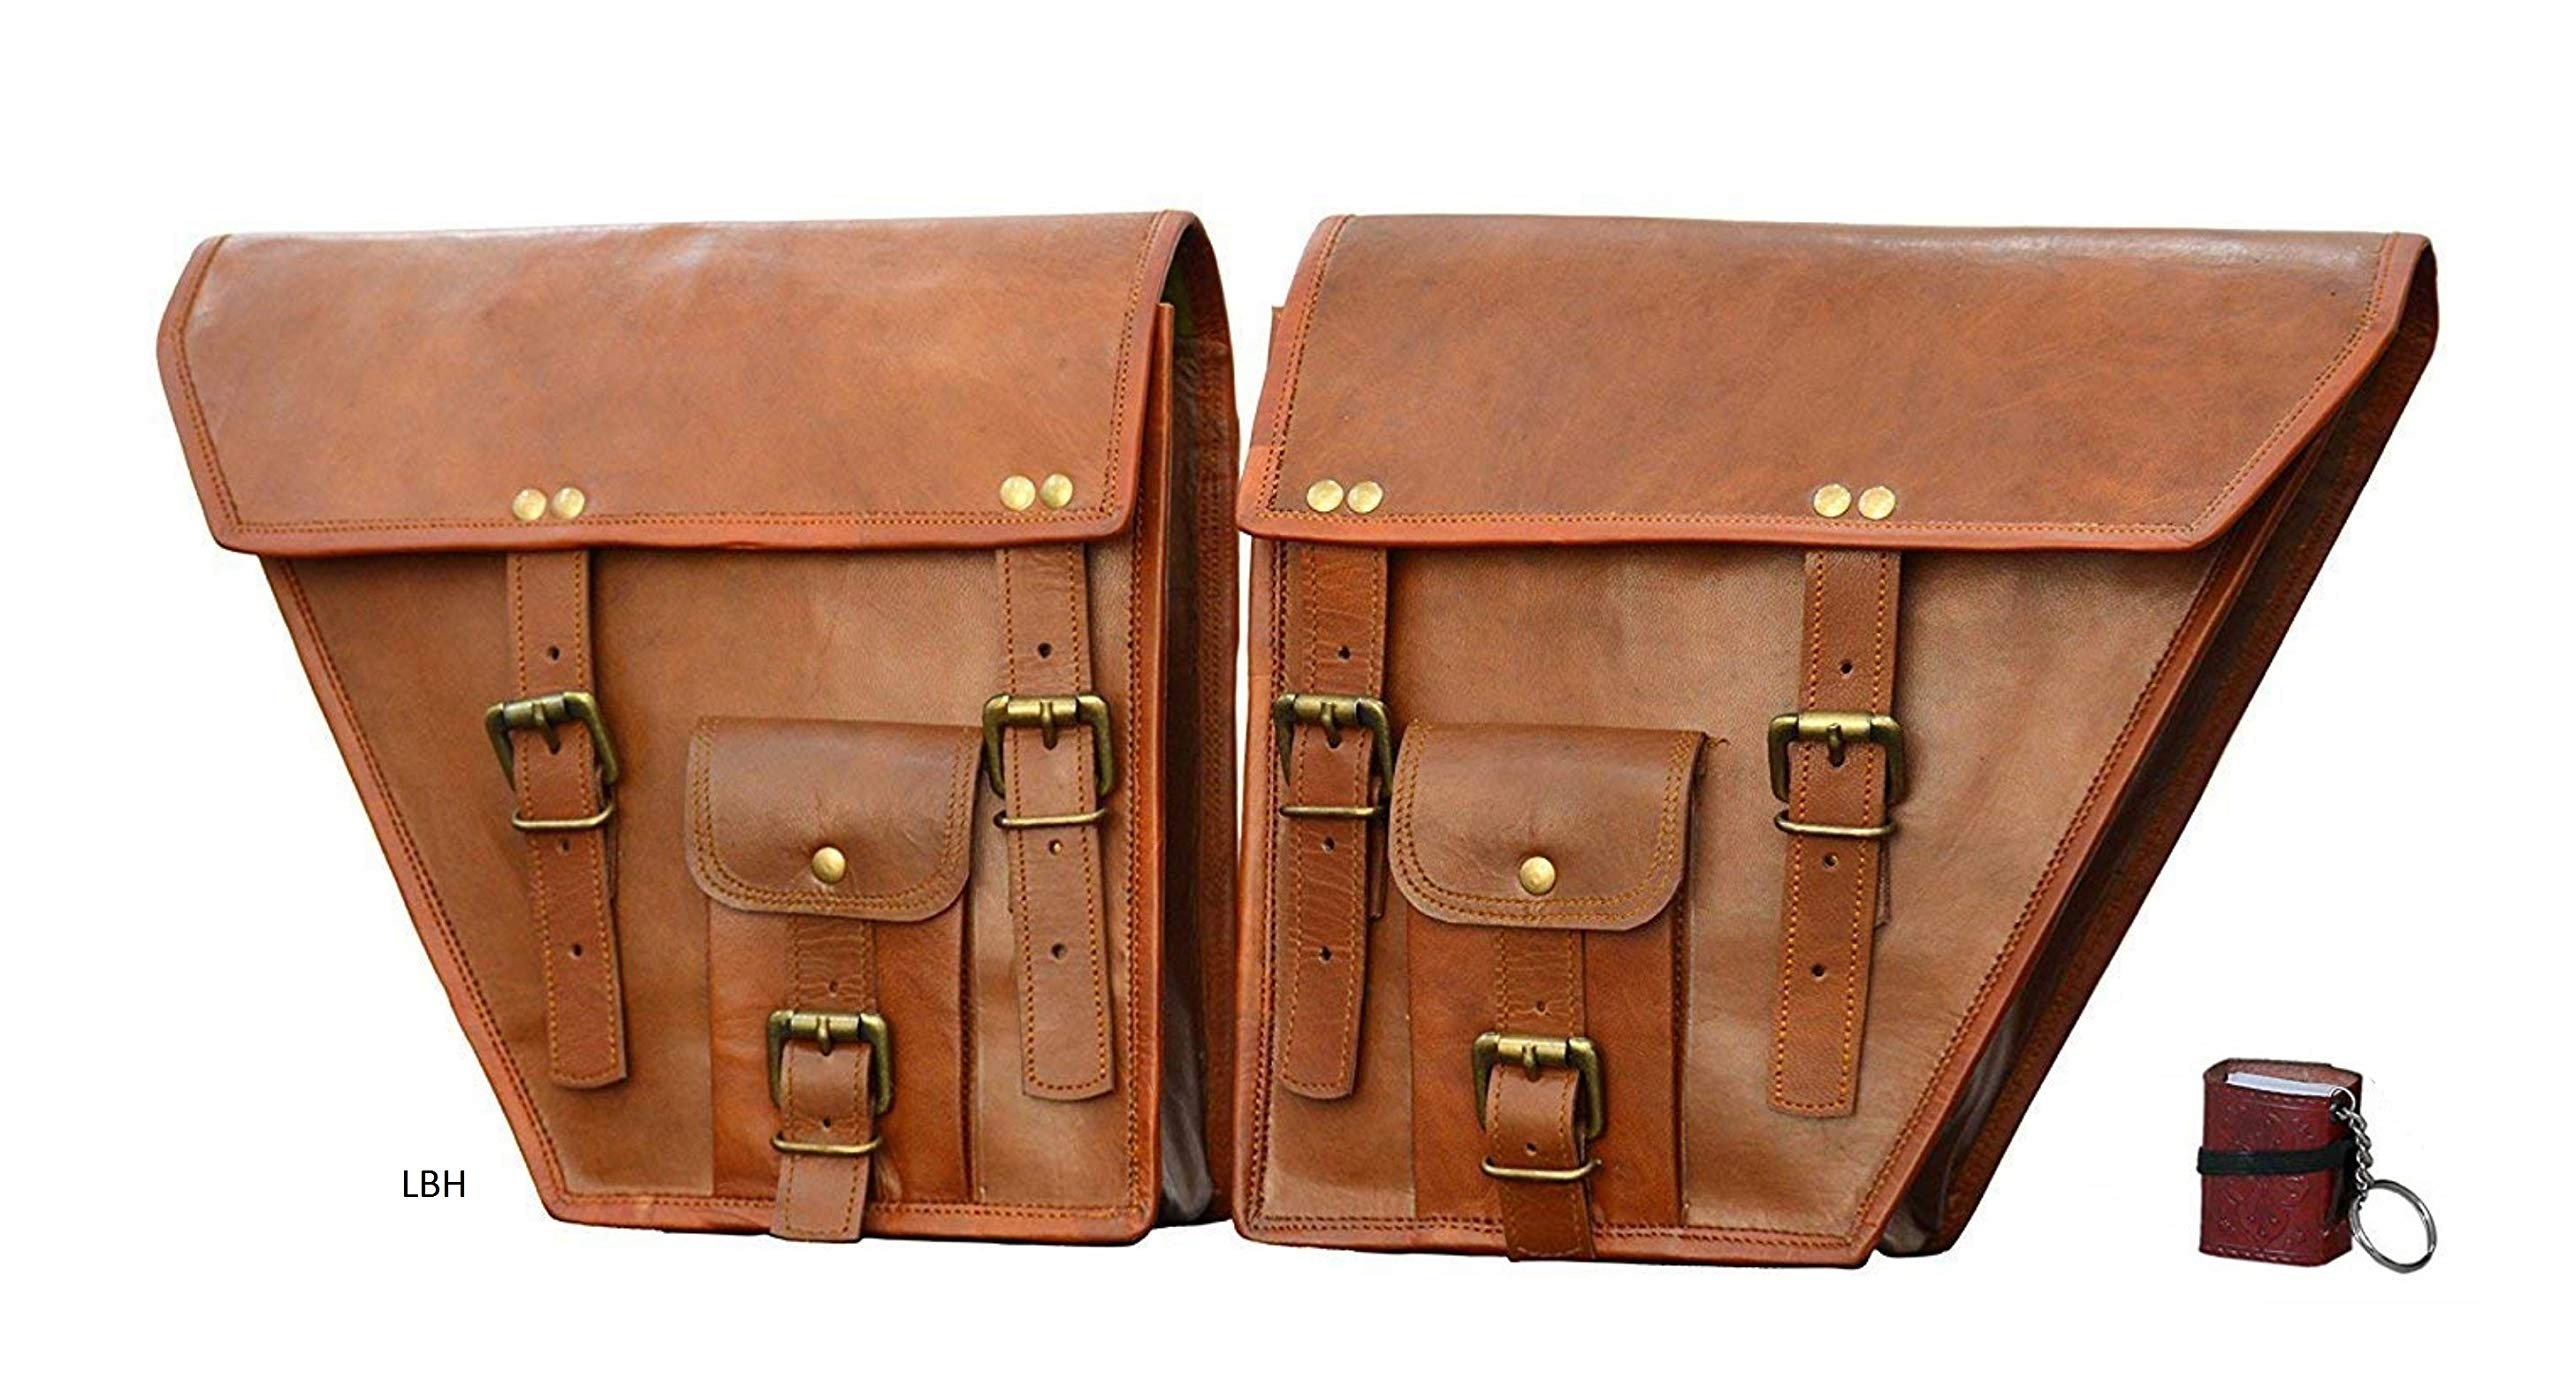 LBH 2 X Motorcycle Side Pouch Brown Leather Side Pouch Classic Saddlebags Saddle Panniers (2 Bags) Summer Sale!` by LBH